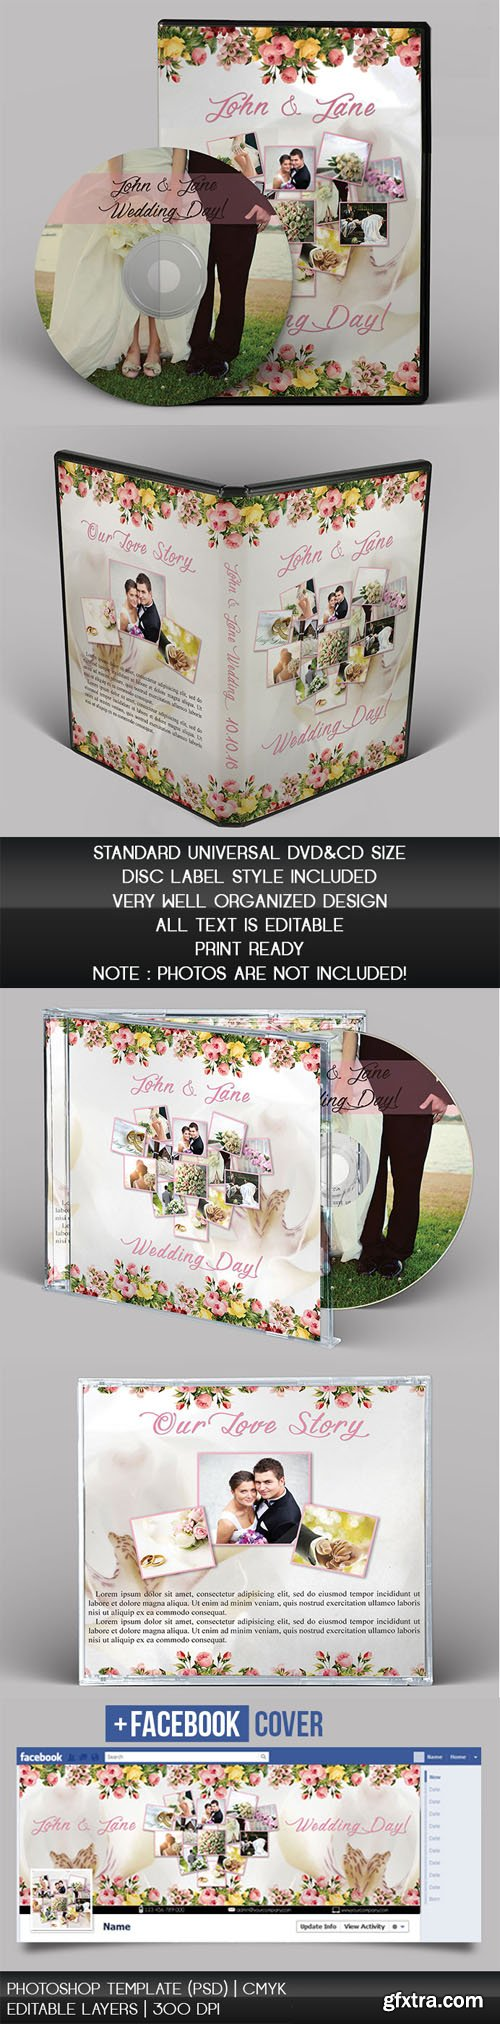 Wedding CD/DVD Cover - PSD Brochure Templates (+ Facebook Cover ...